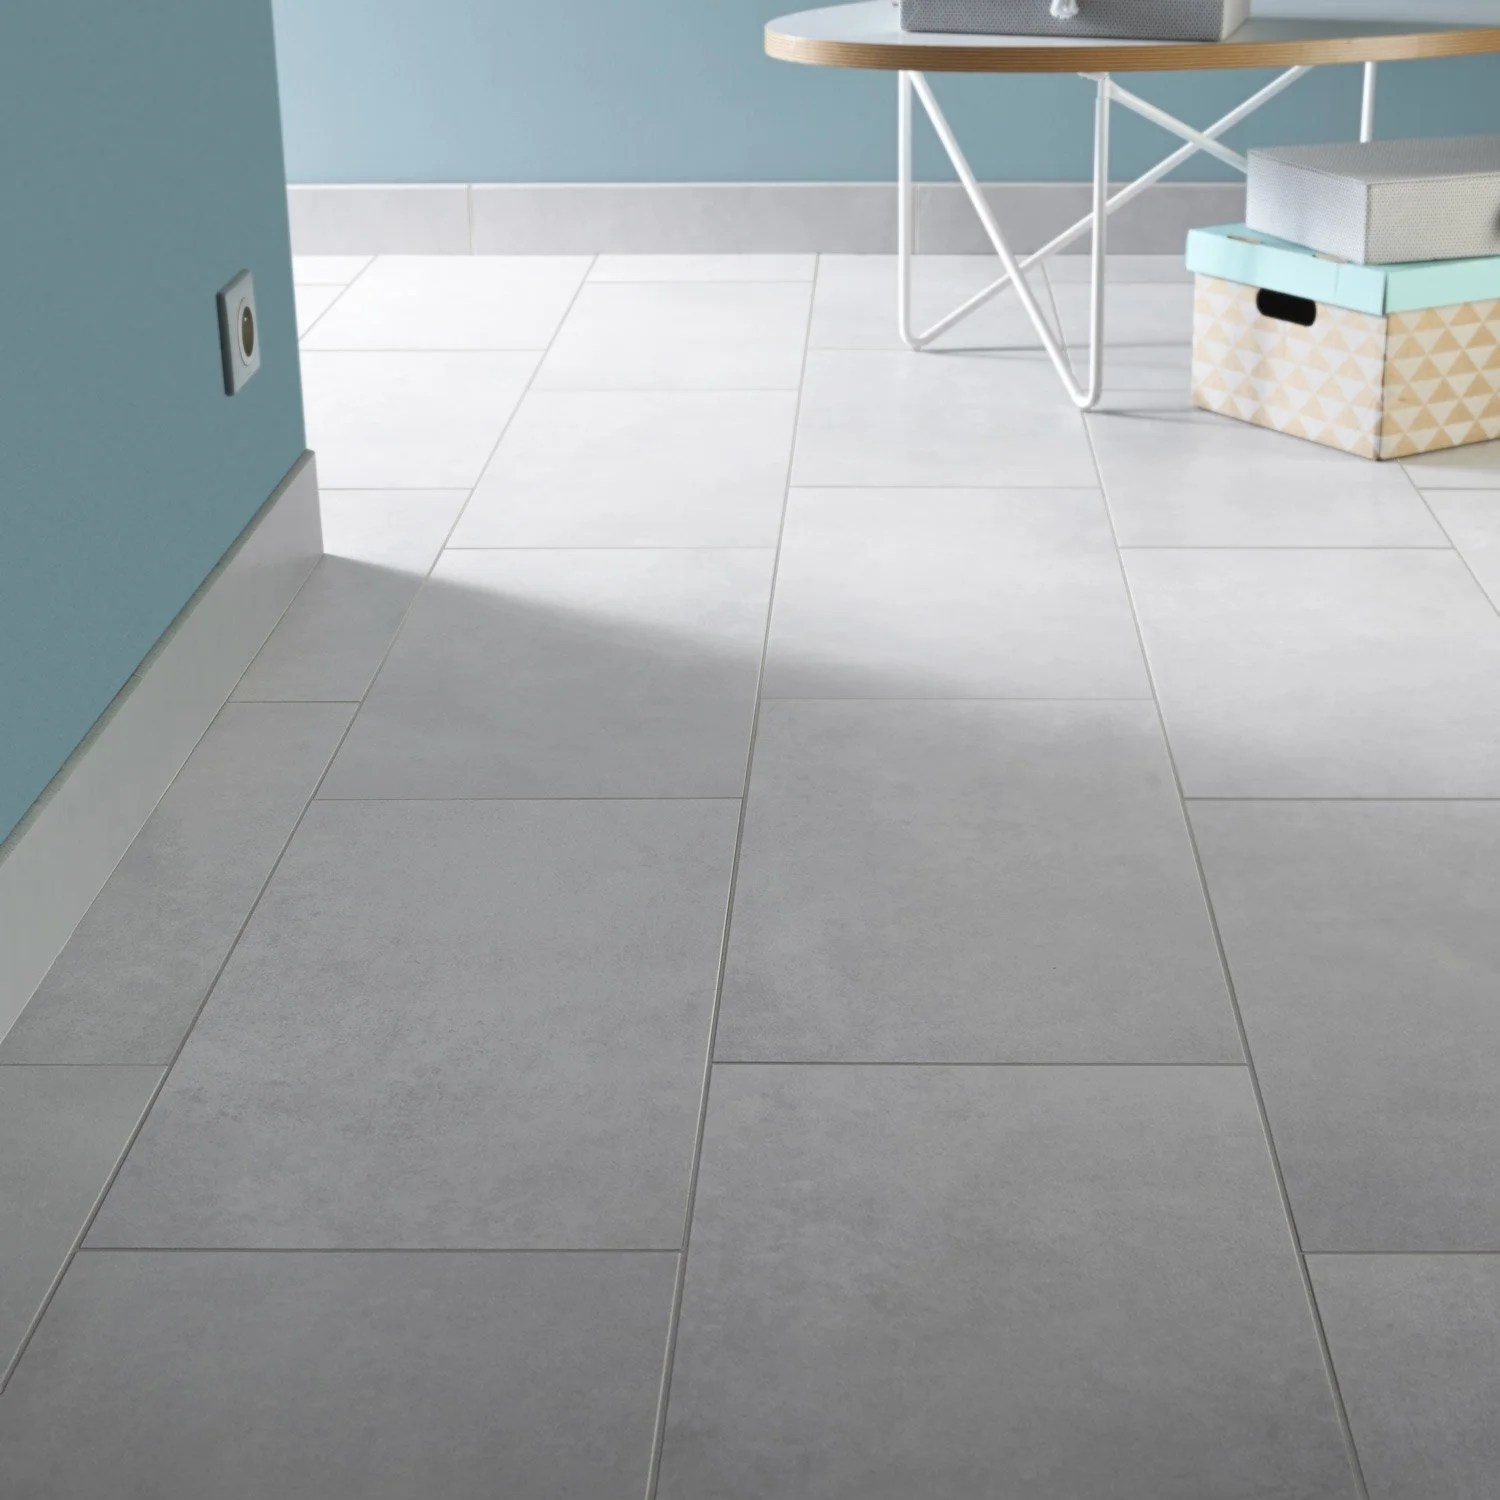 Leroy Merlin Plinthe Carrelage Plinthes Carrelage Leroy Merlin Affordable Pose Carrelage